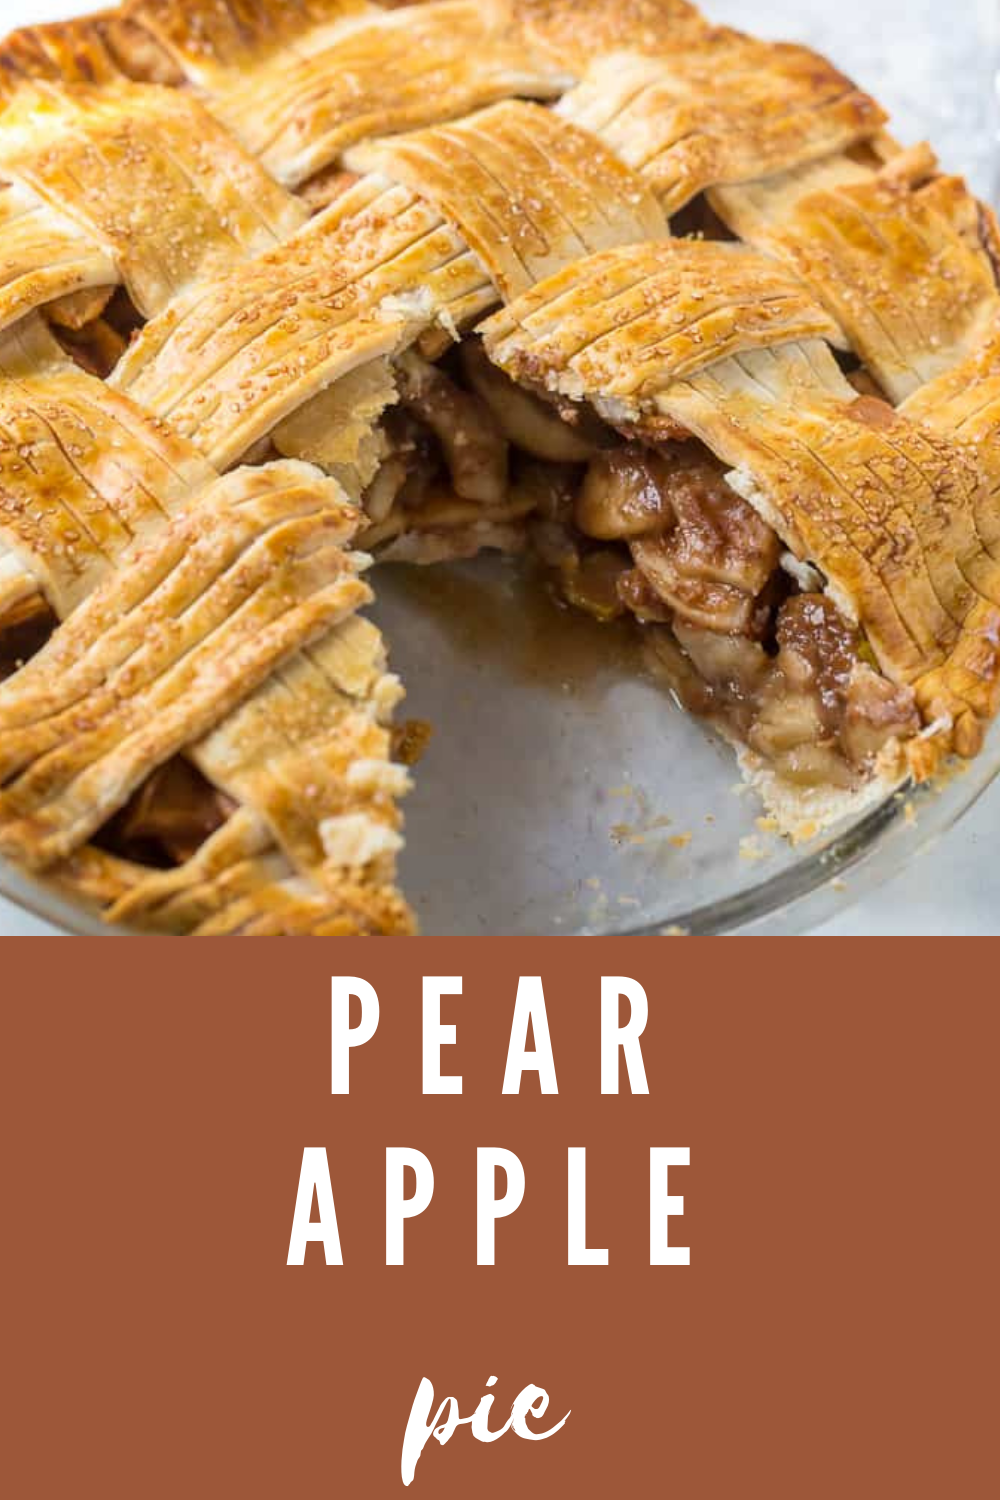 Pear Apple Pie Recipe Thanksgiving Desserts Table Apple Pear Pie Apple Recipes